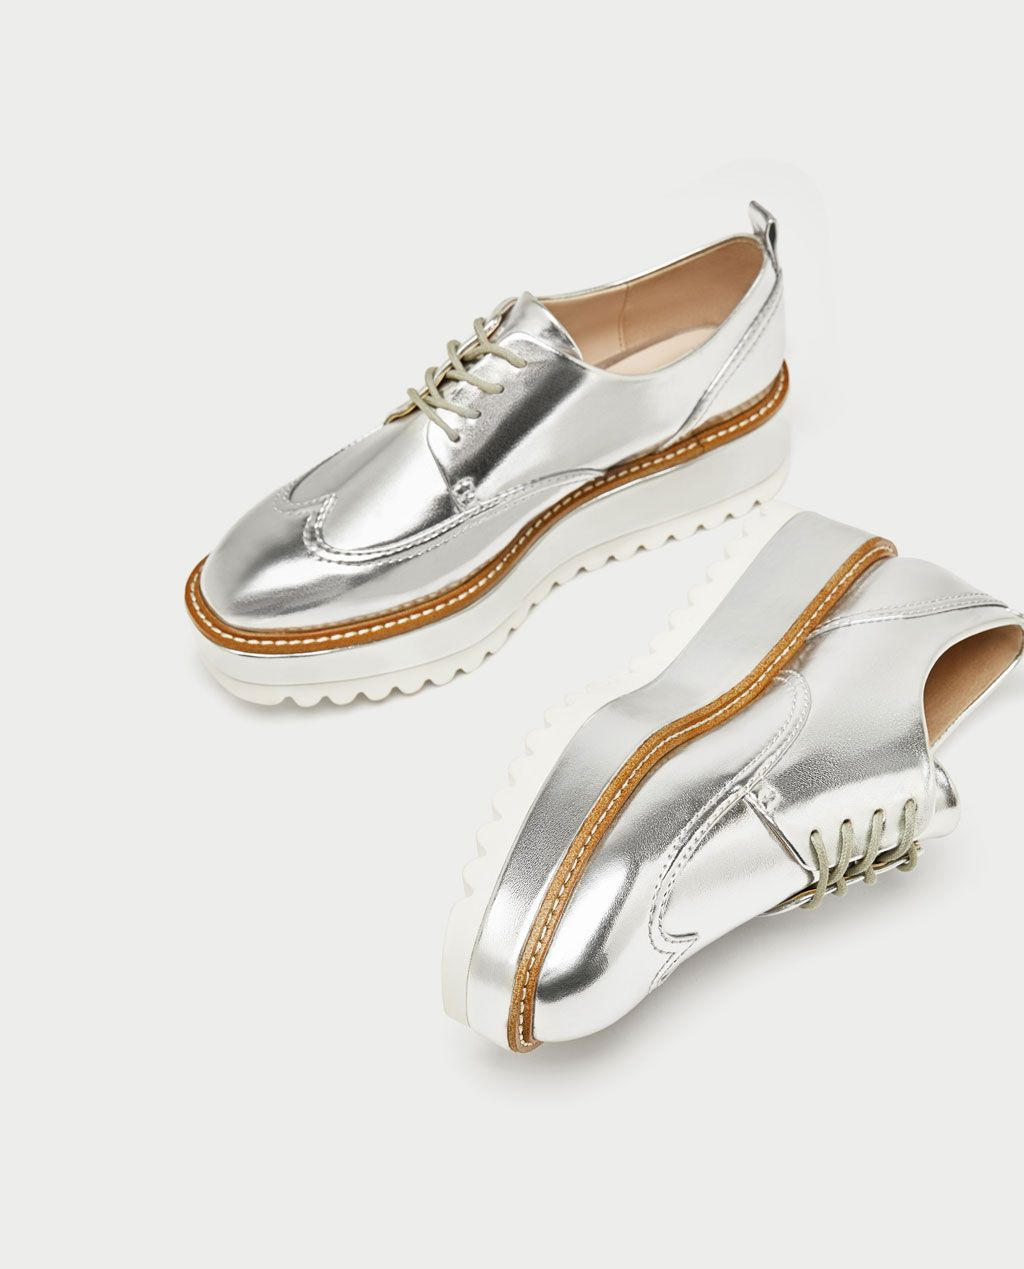 9cdcc3d4d633 ZARA - WOMAN - SILVER TRACK SOLE BROGUES